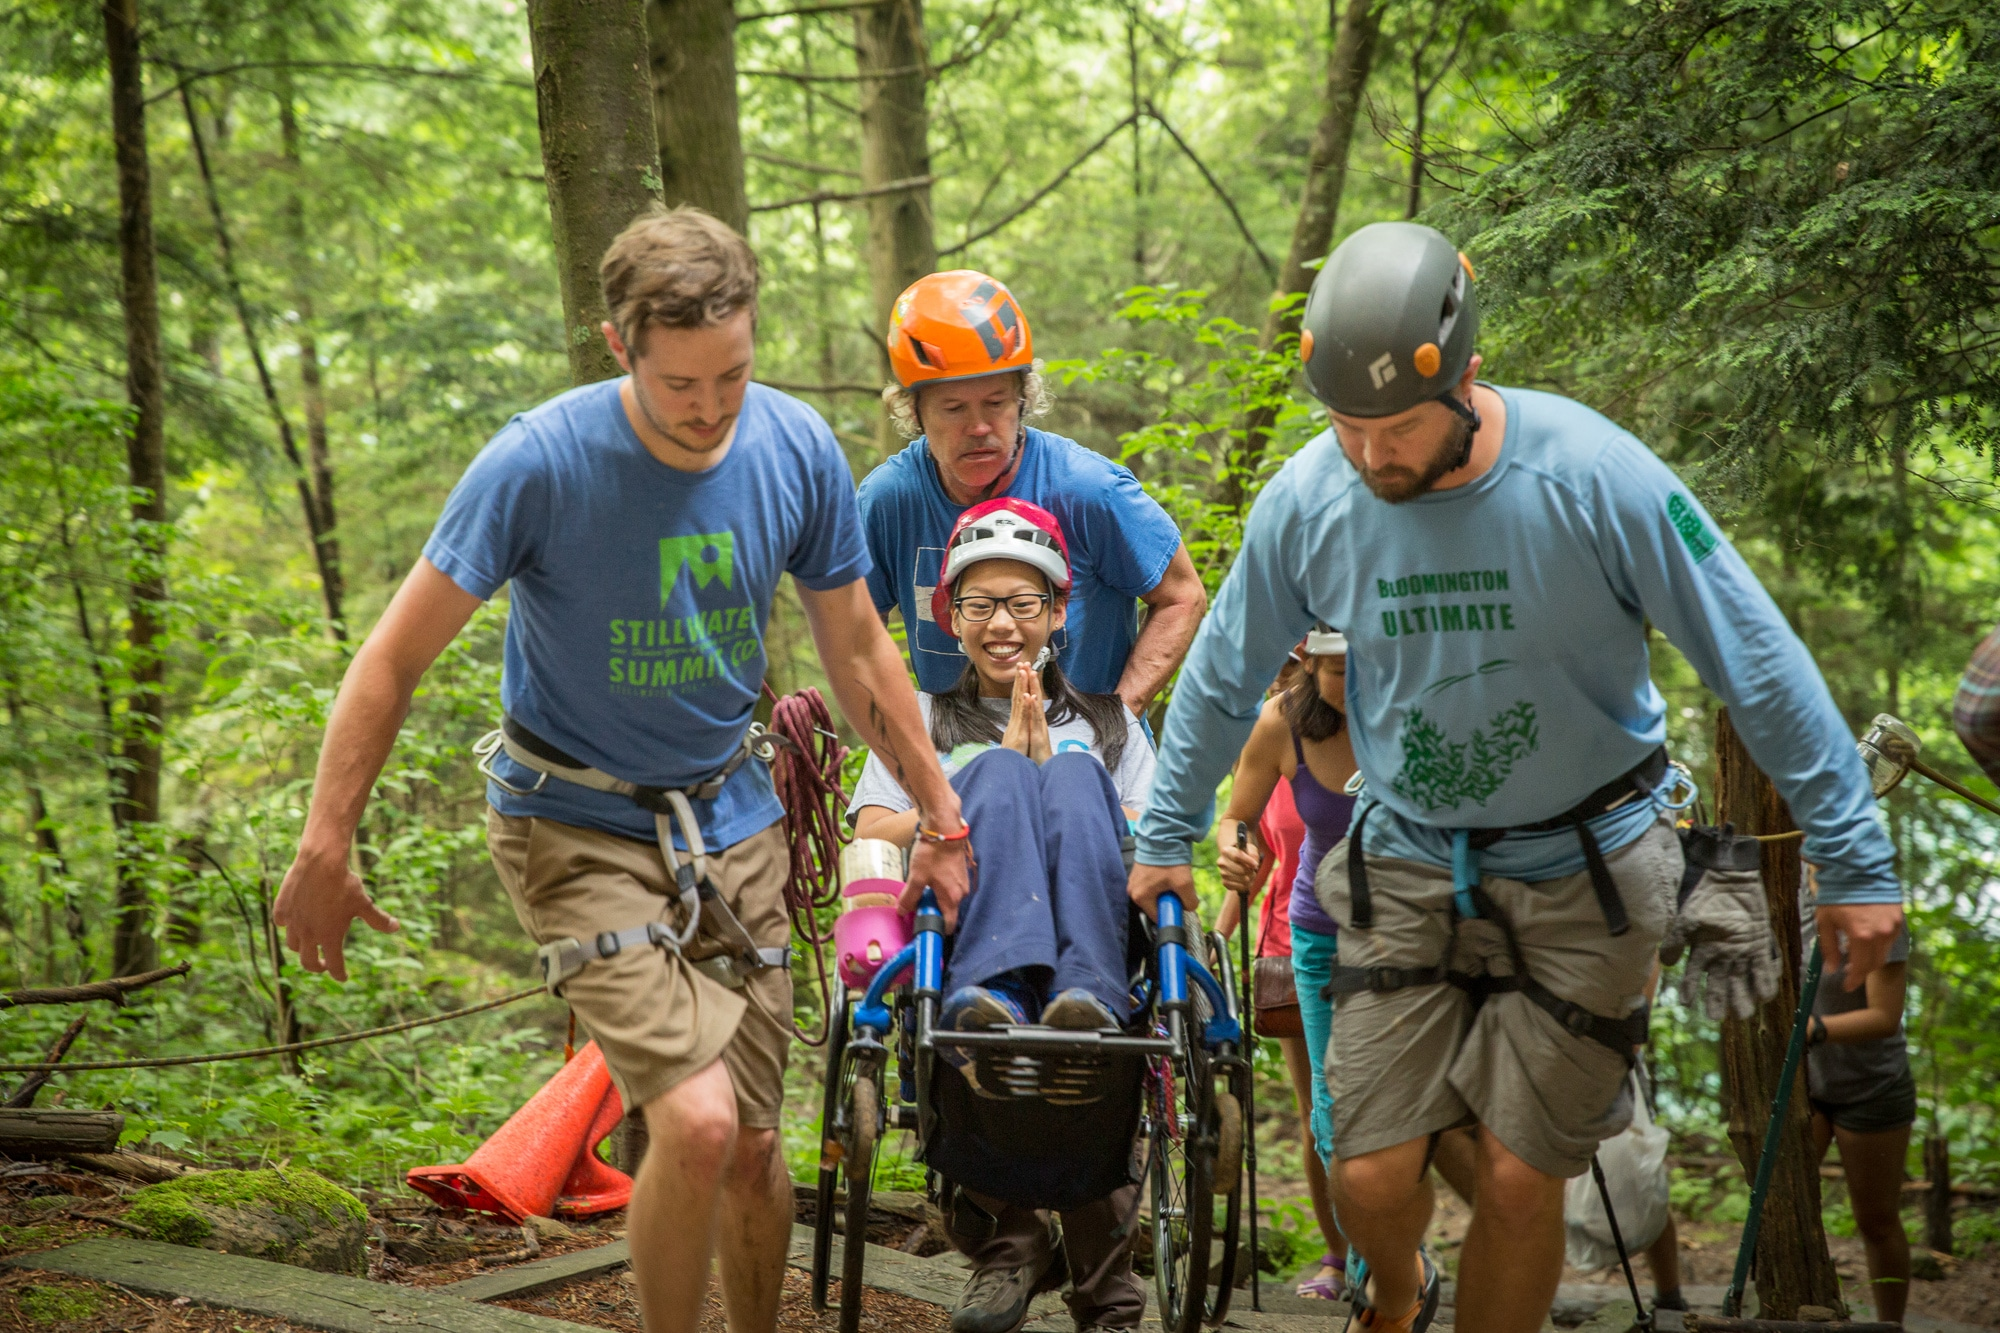 Three men wearing climbing equipment carry a smiling girl in her wheelchair up a set of wooden stairs in the forest.